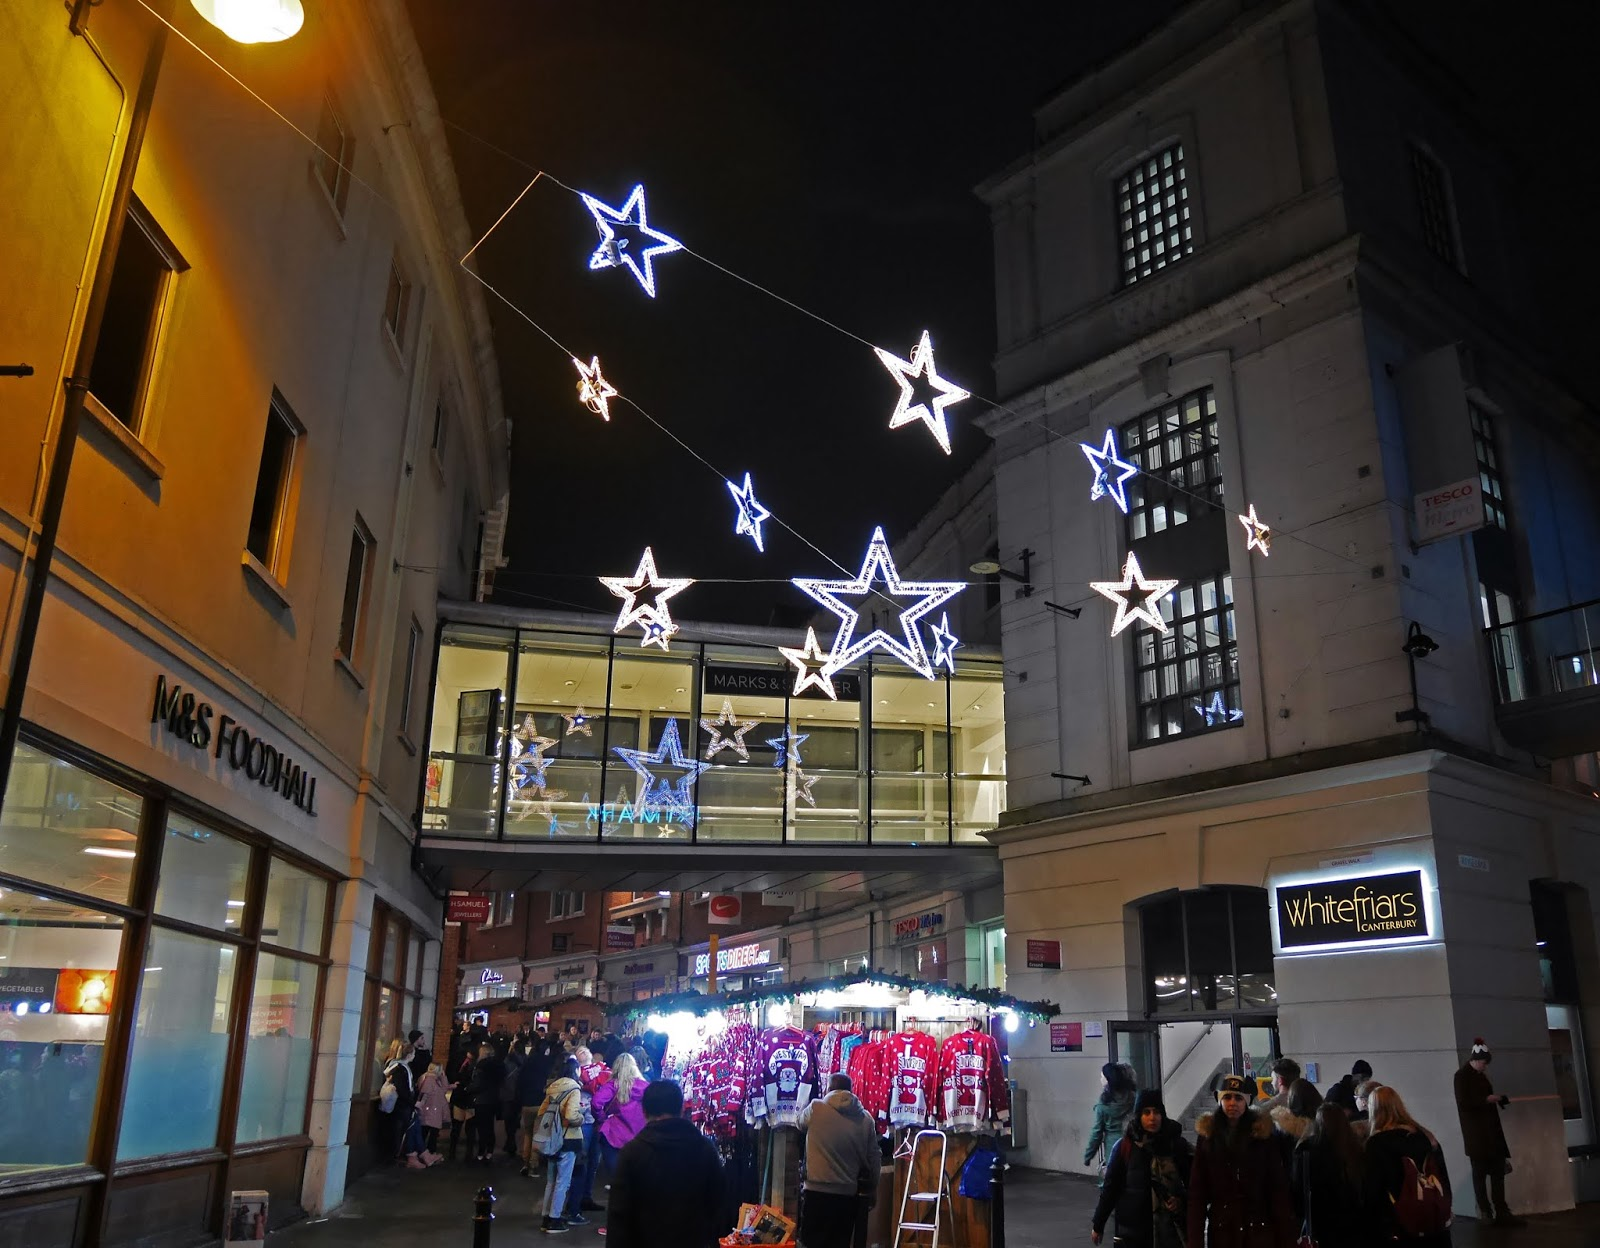 Star-shaped Christmas lights in Canterbury, Kent